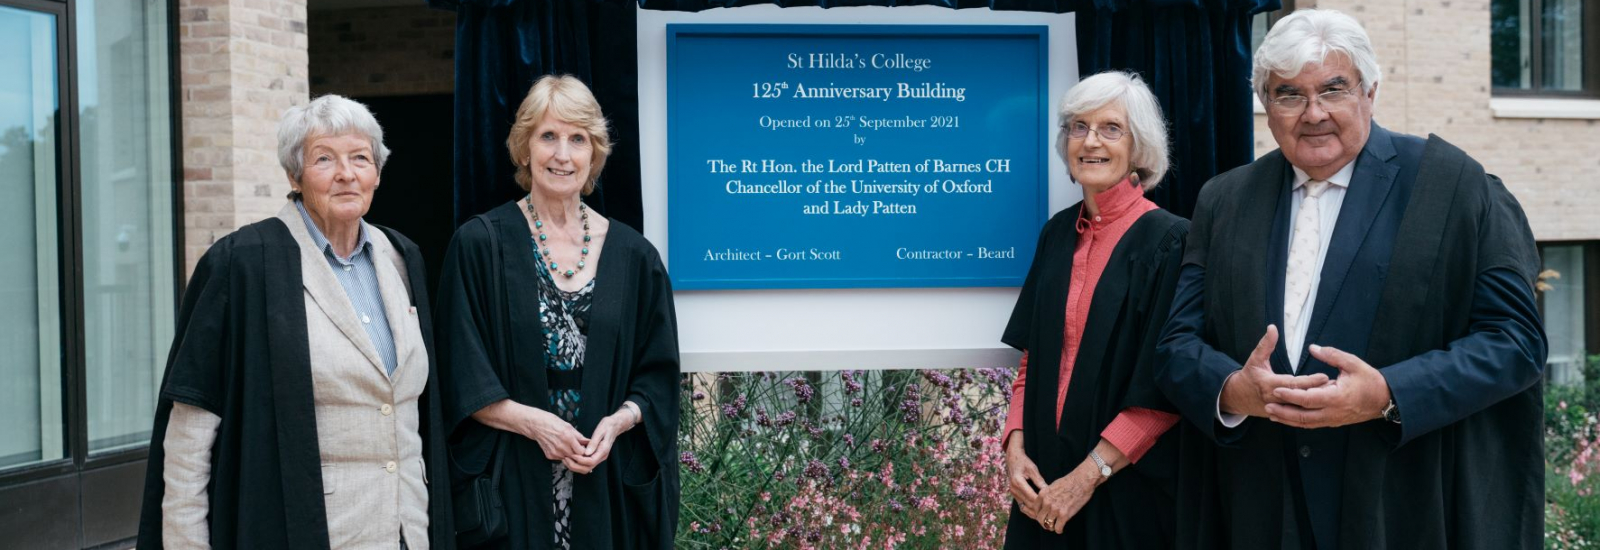 St Hilda's Pavilion and Anniversary Building are officially opened on 26 September 2021